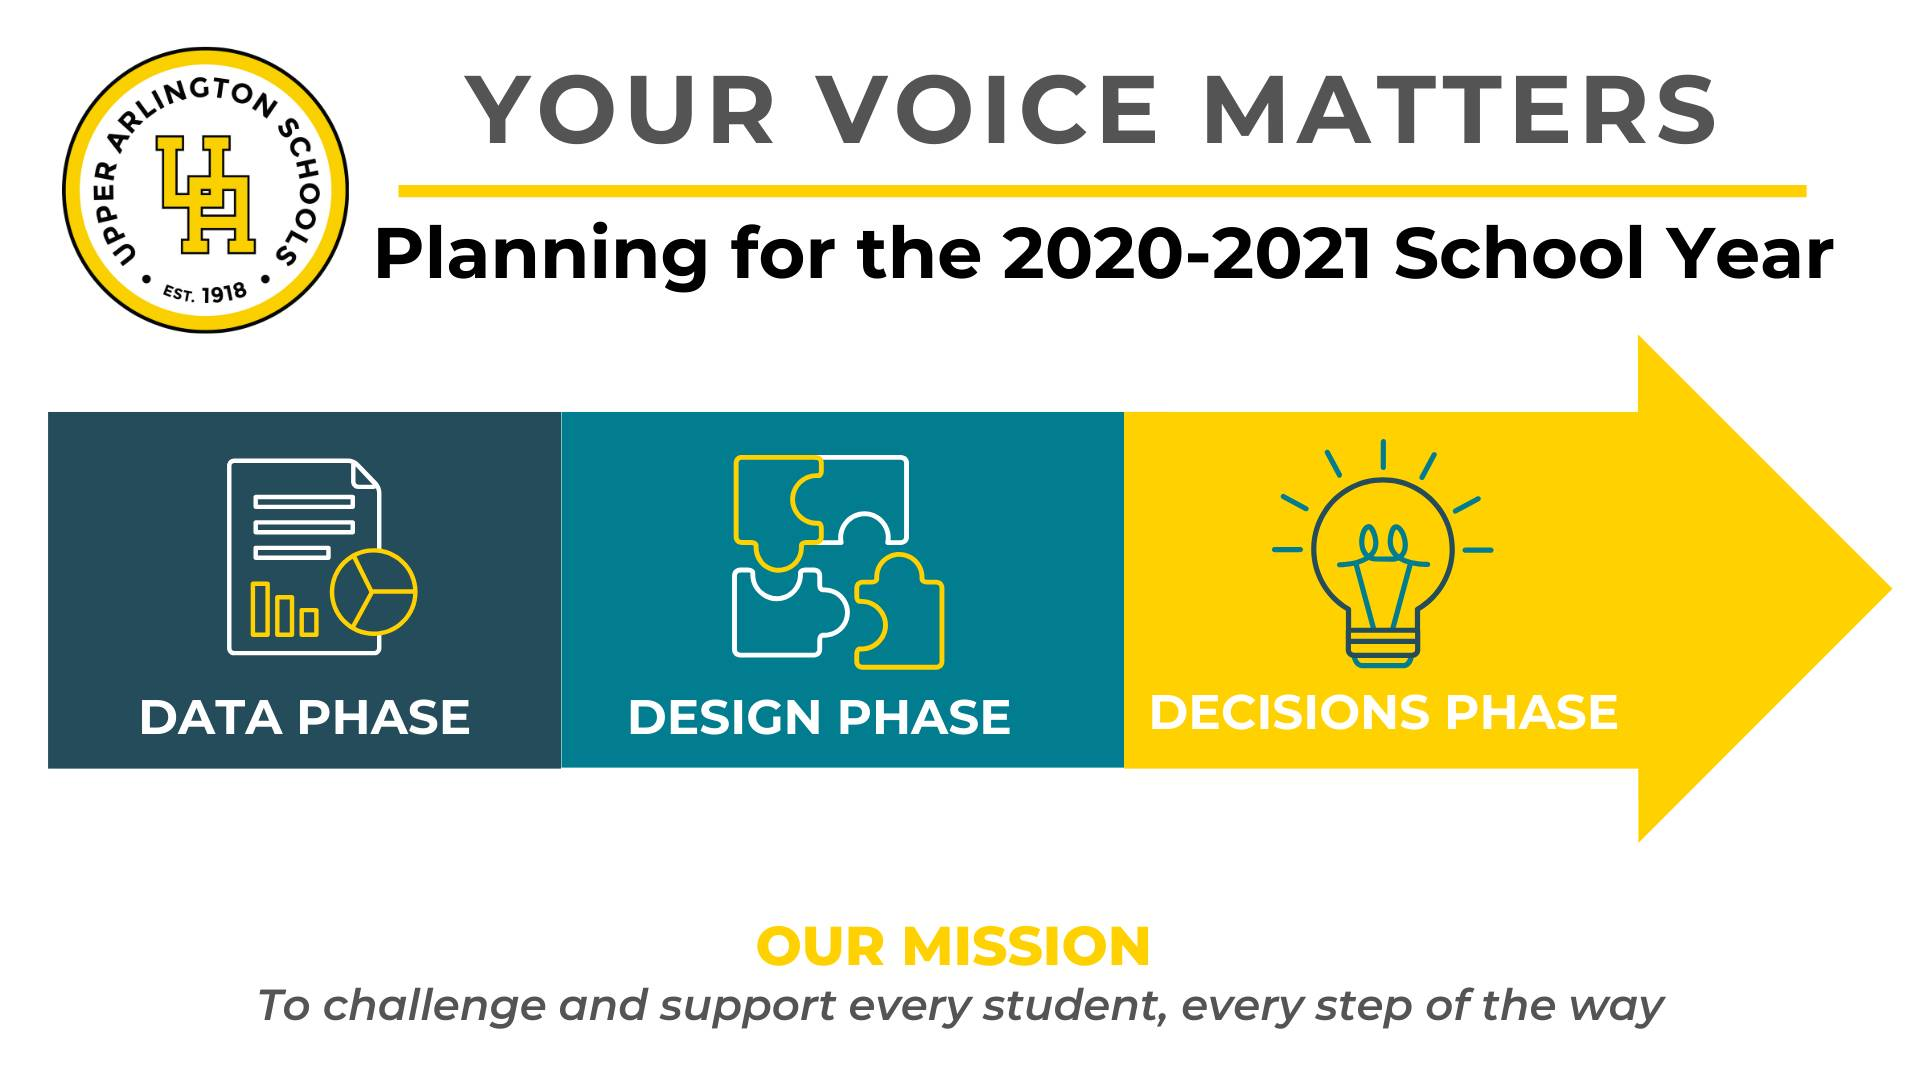 Your Voice Matters planning and feedback process graphic